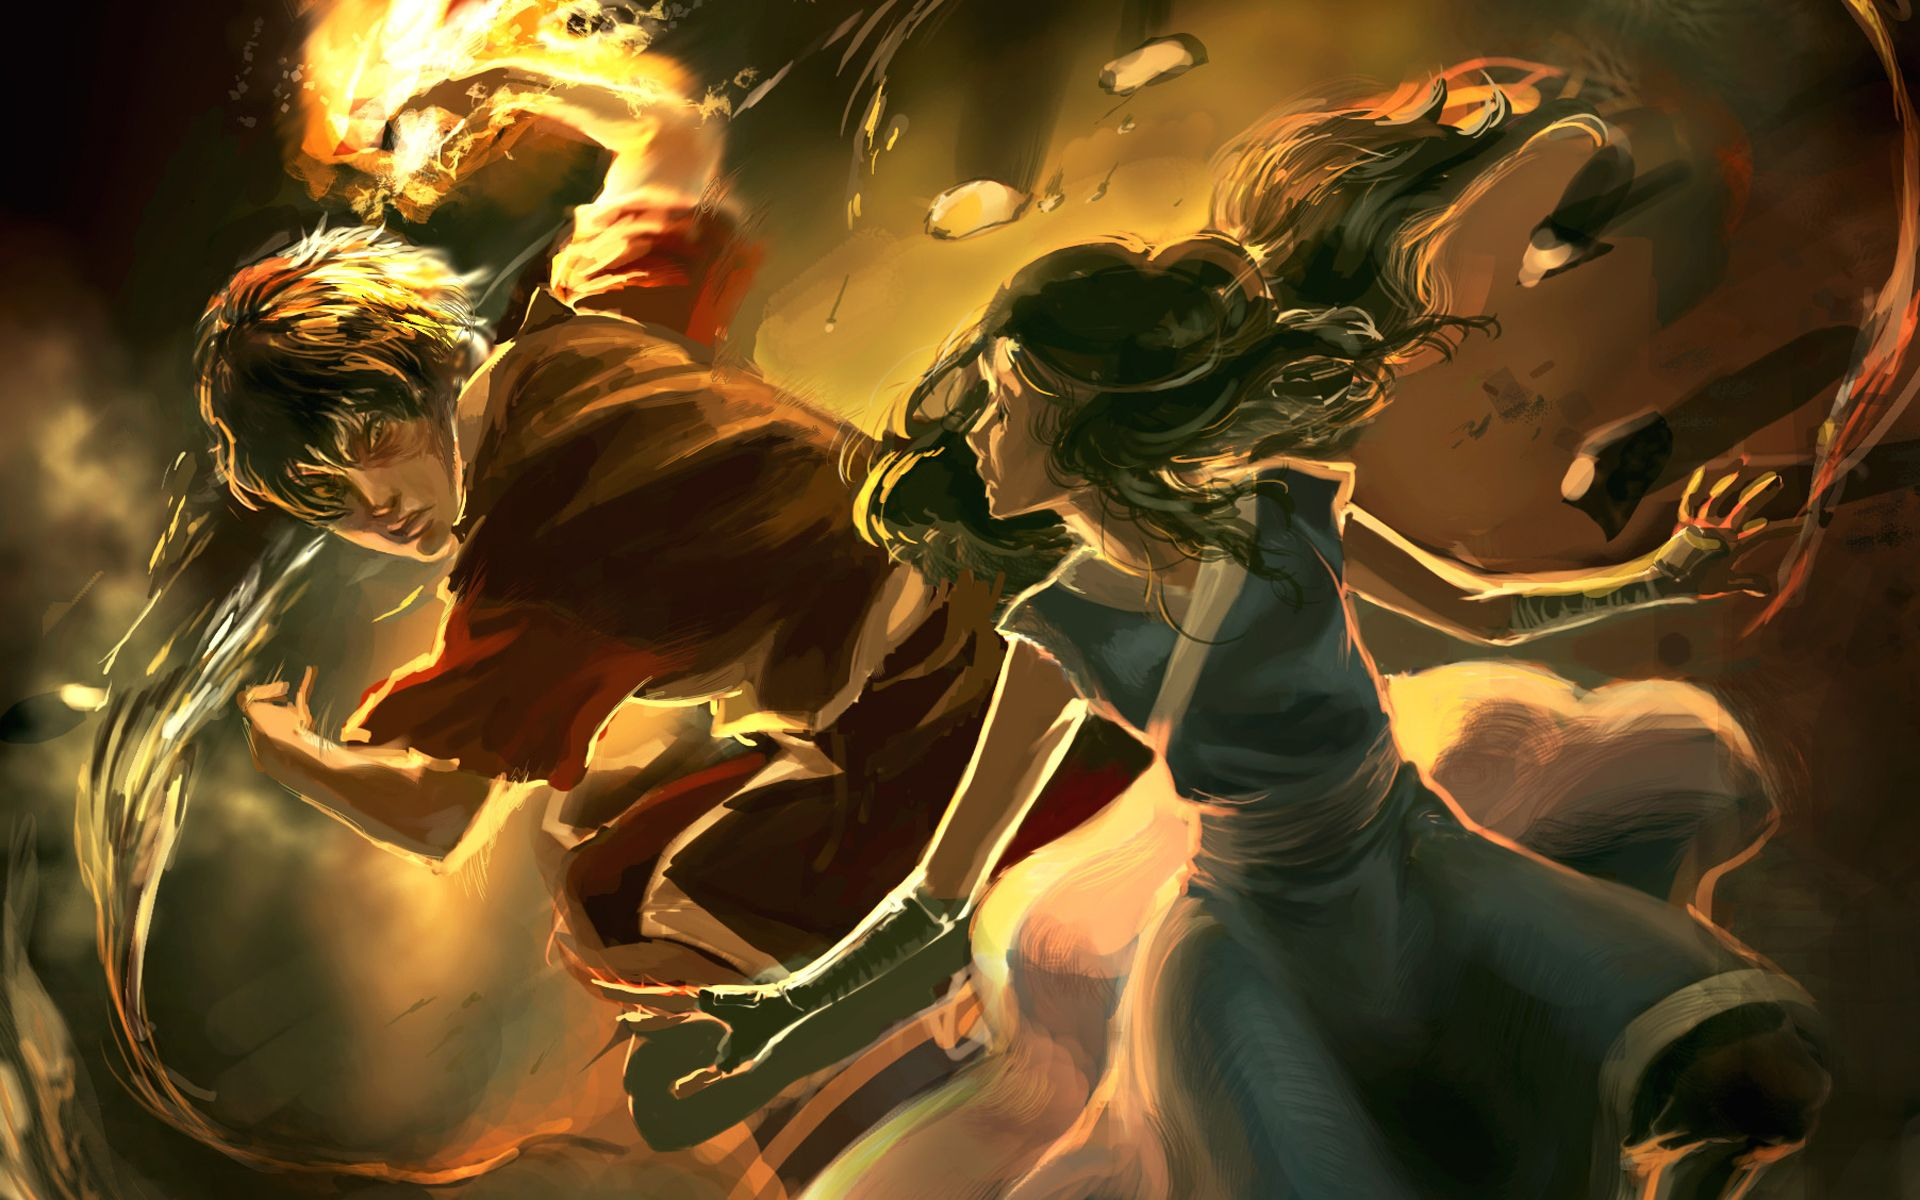 Pin By Benjamin Laberge On Huh Avatar The Last Airbender Art The Last Airbender Avatar The Last Airbender